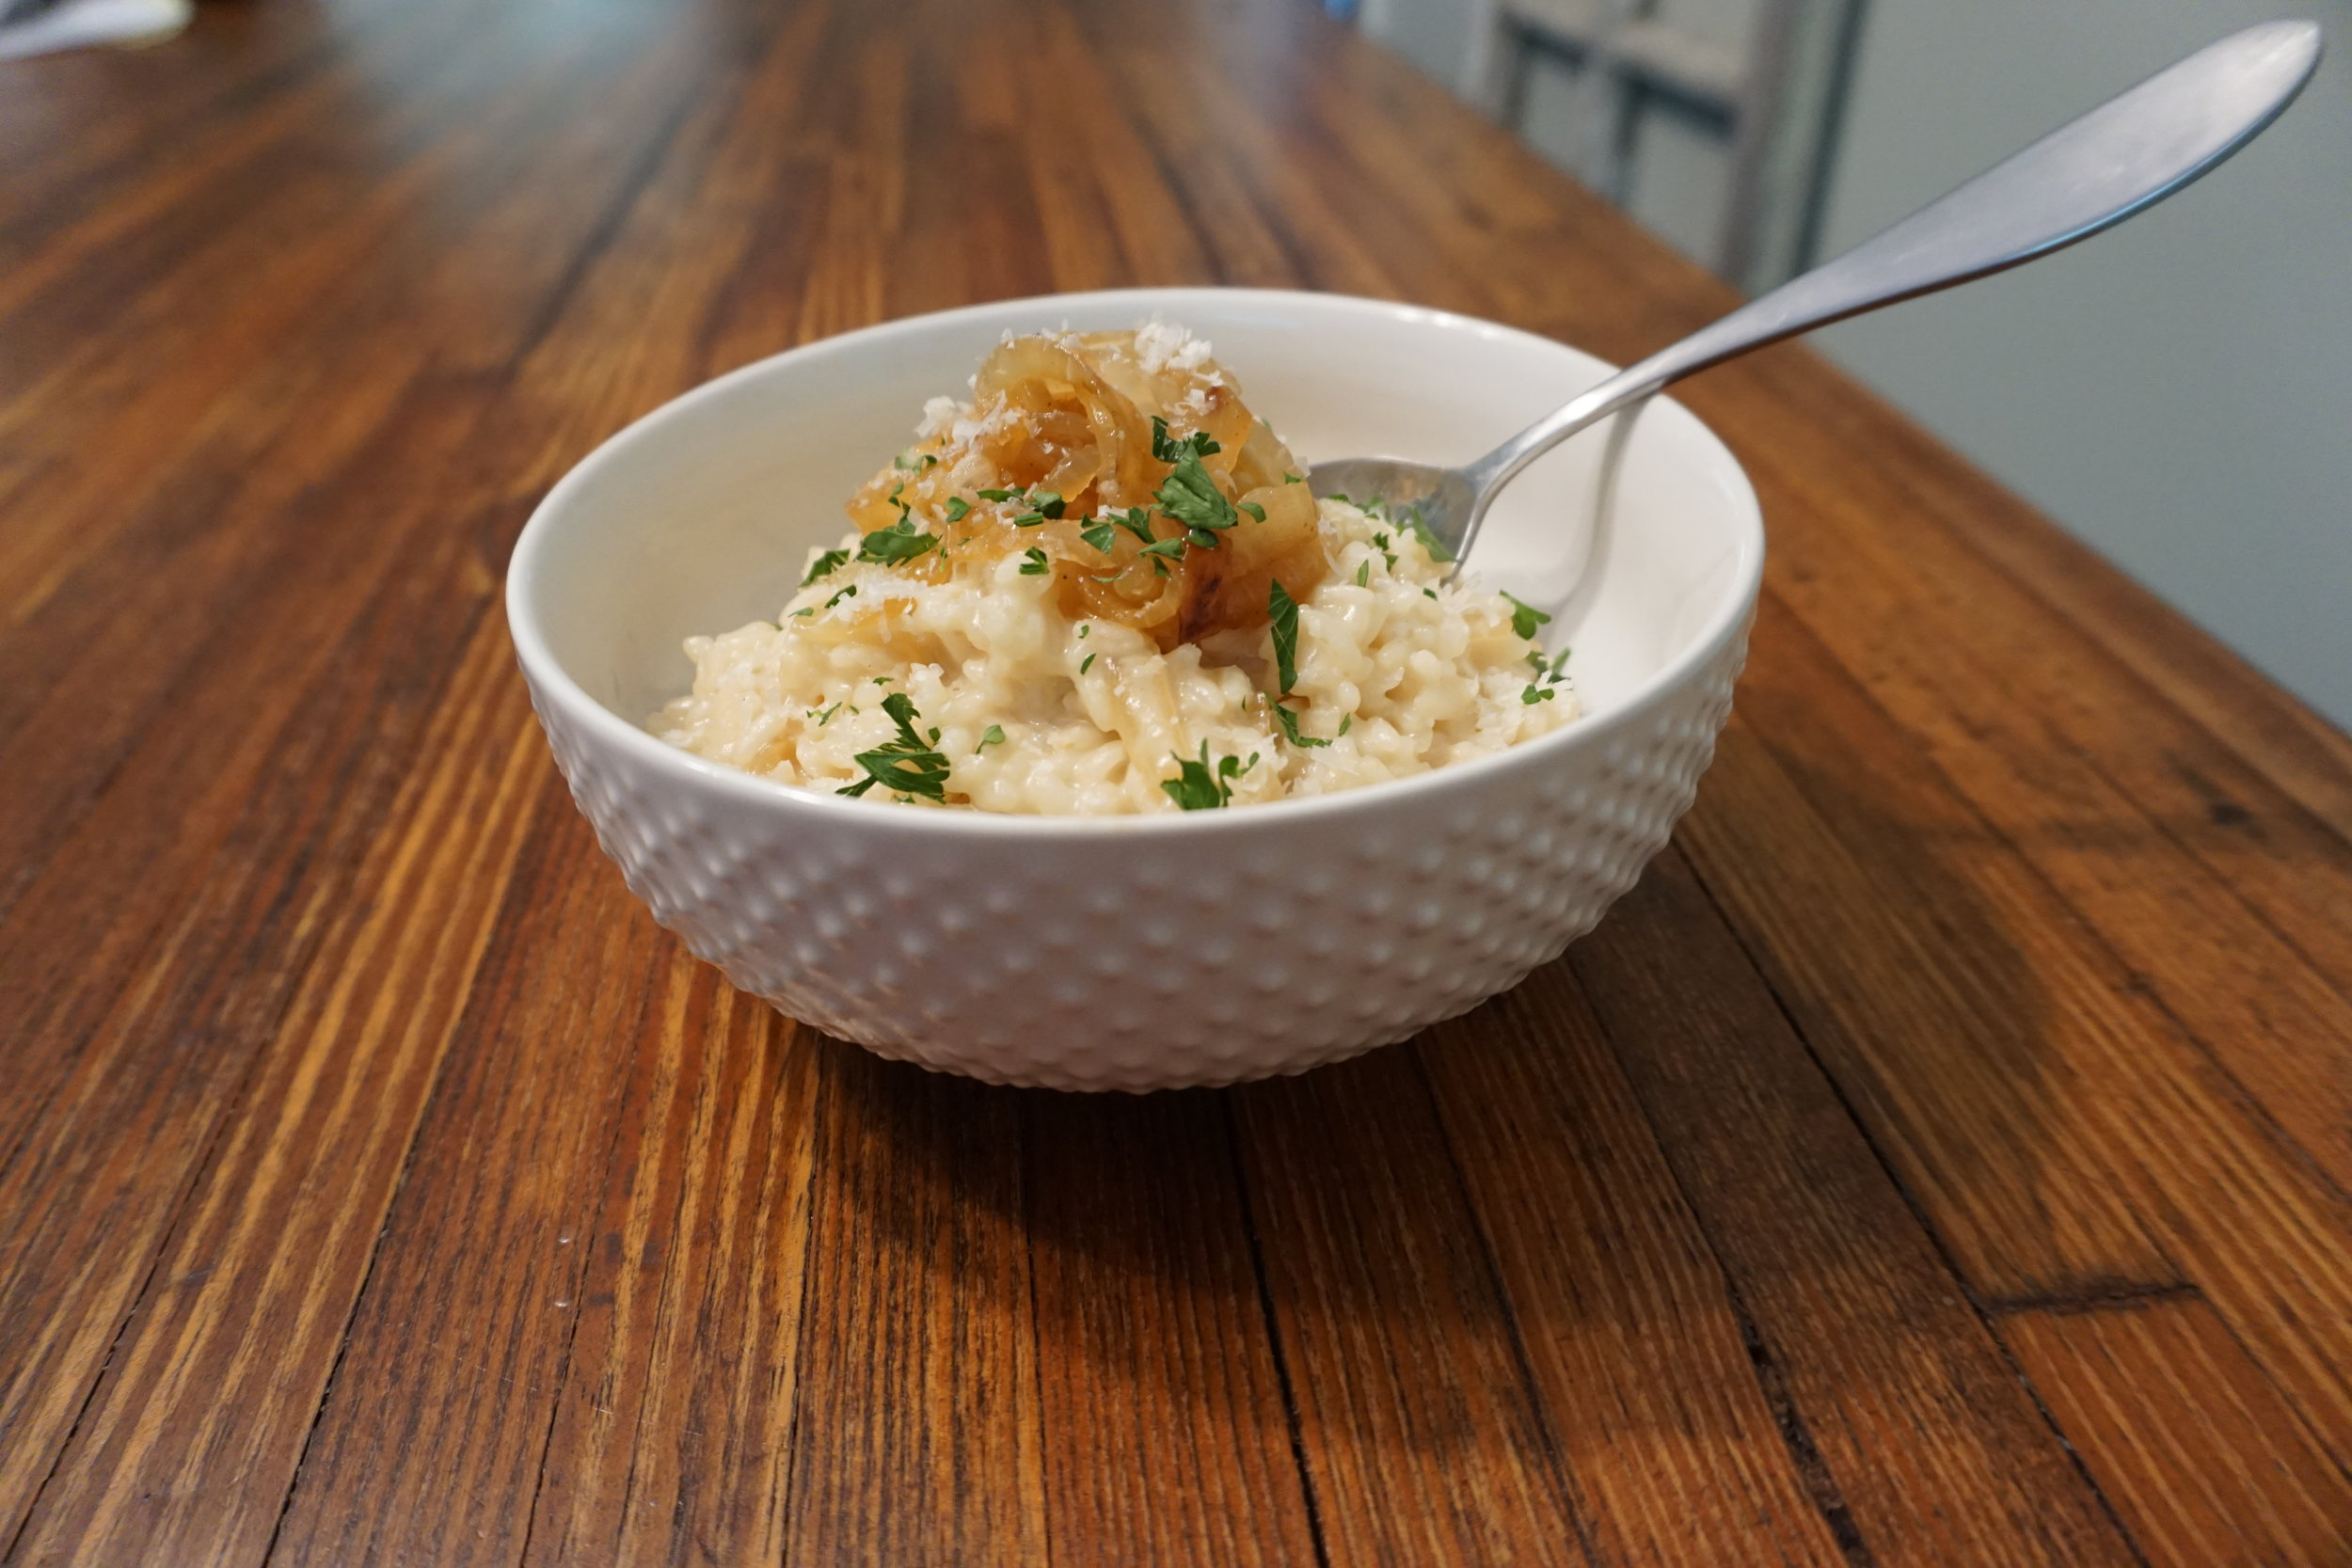 Caramelized Onion Risotto - This is a great side dish or is rich enough to be a meal on its own. Savory flavor that is great to the last bite